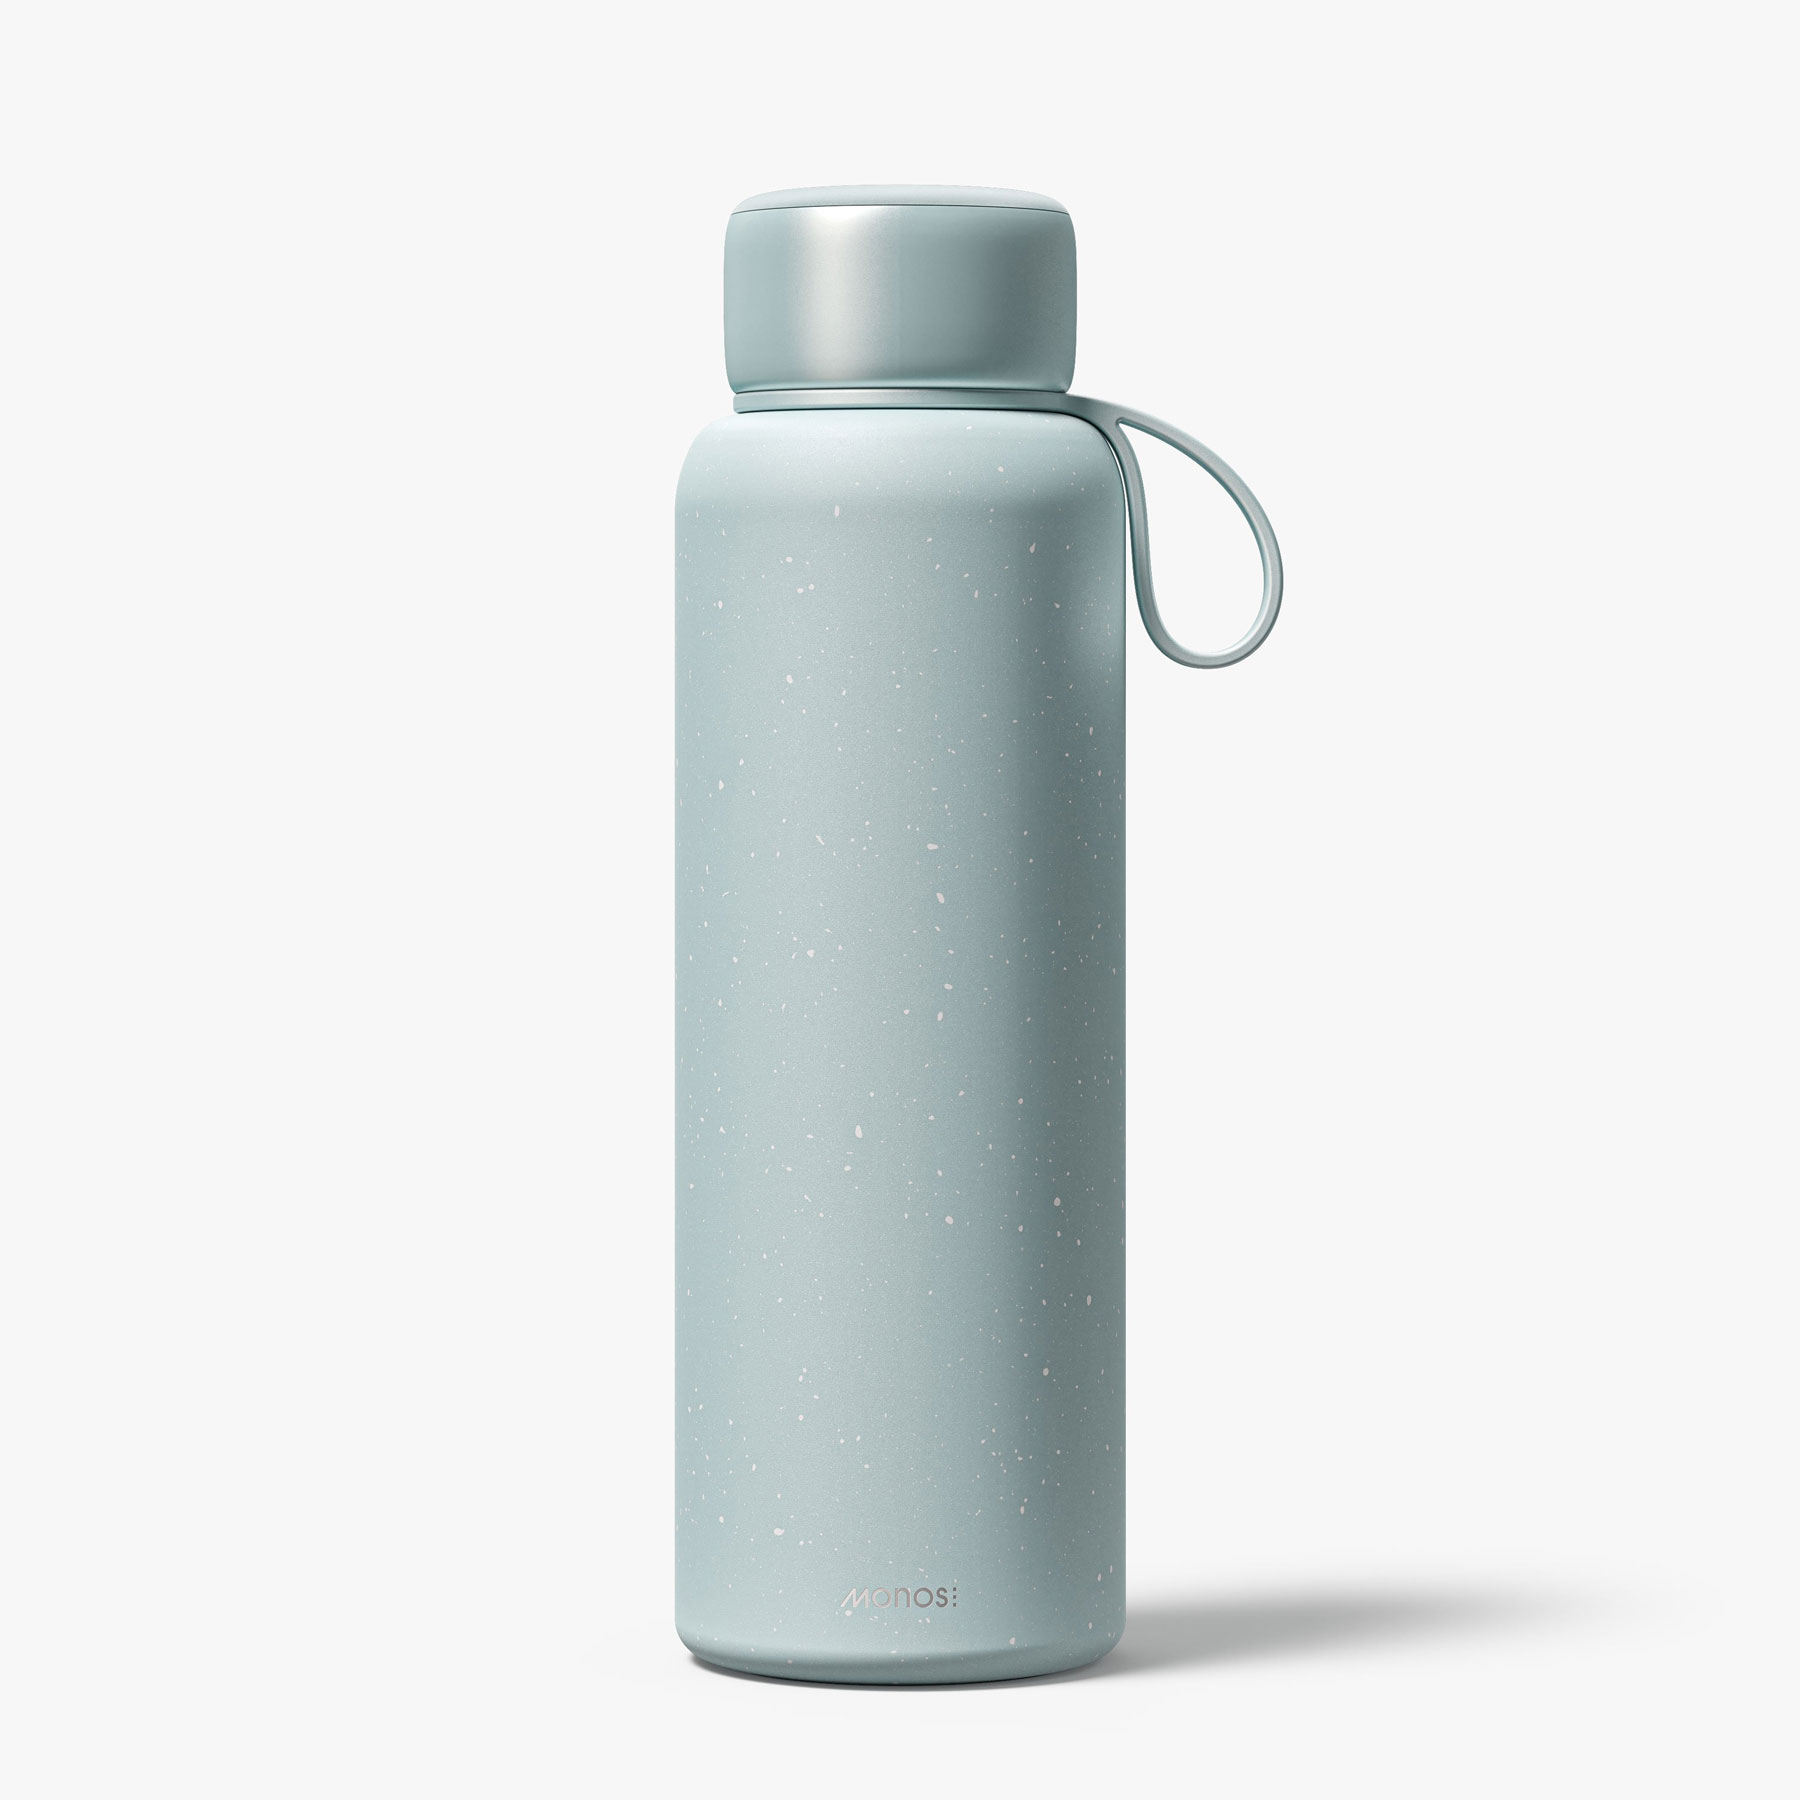 6 Clever Items (12/18/20) - Monos Kiyo UVC Bottle